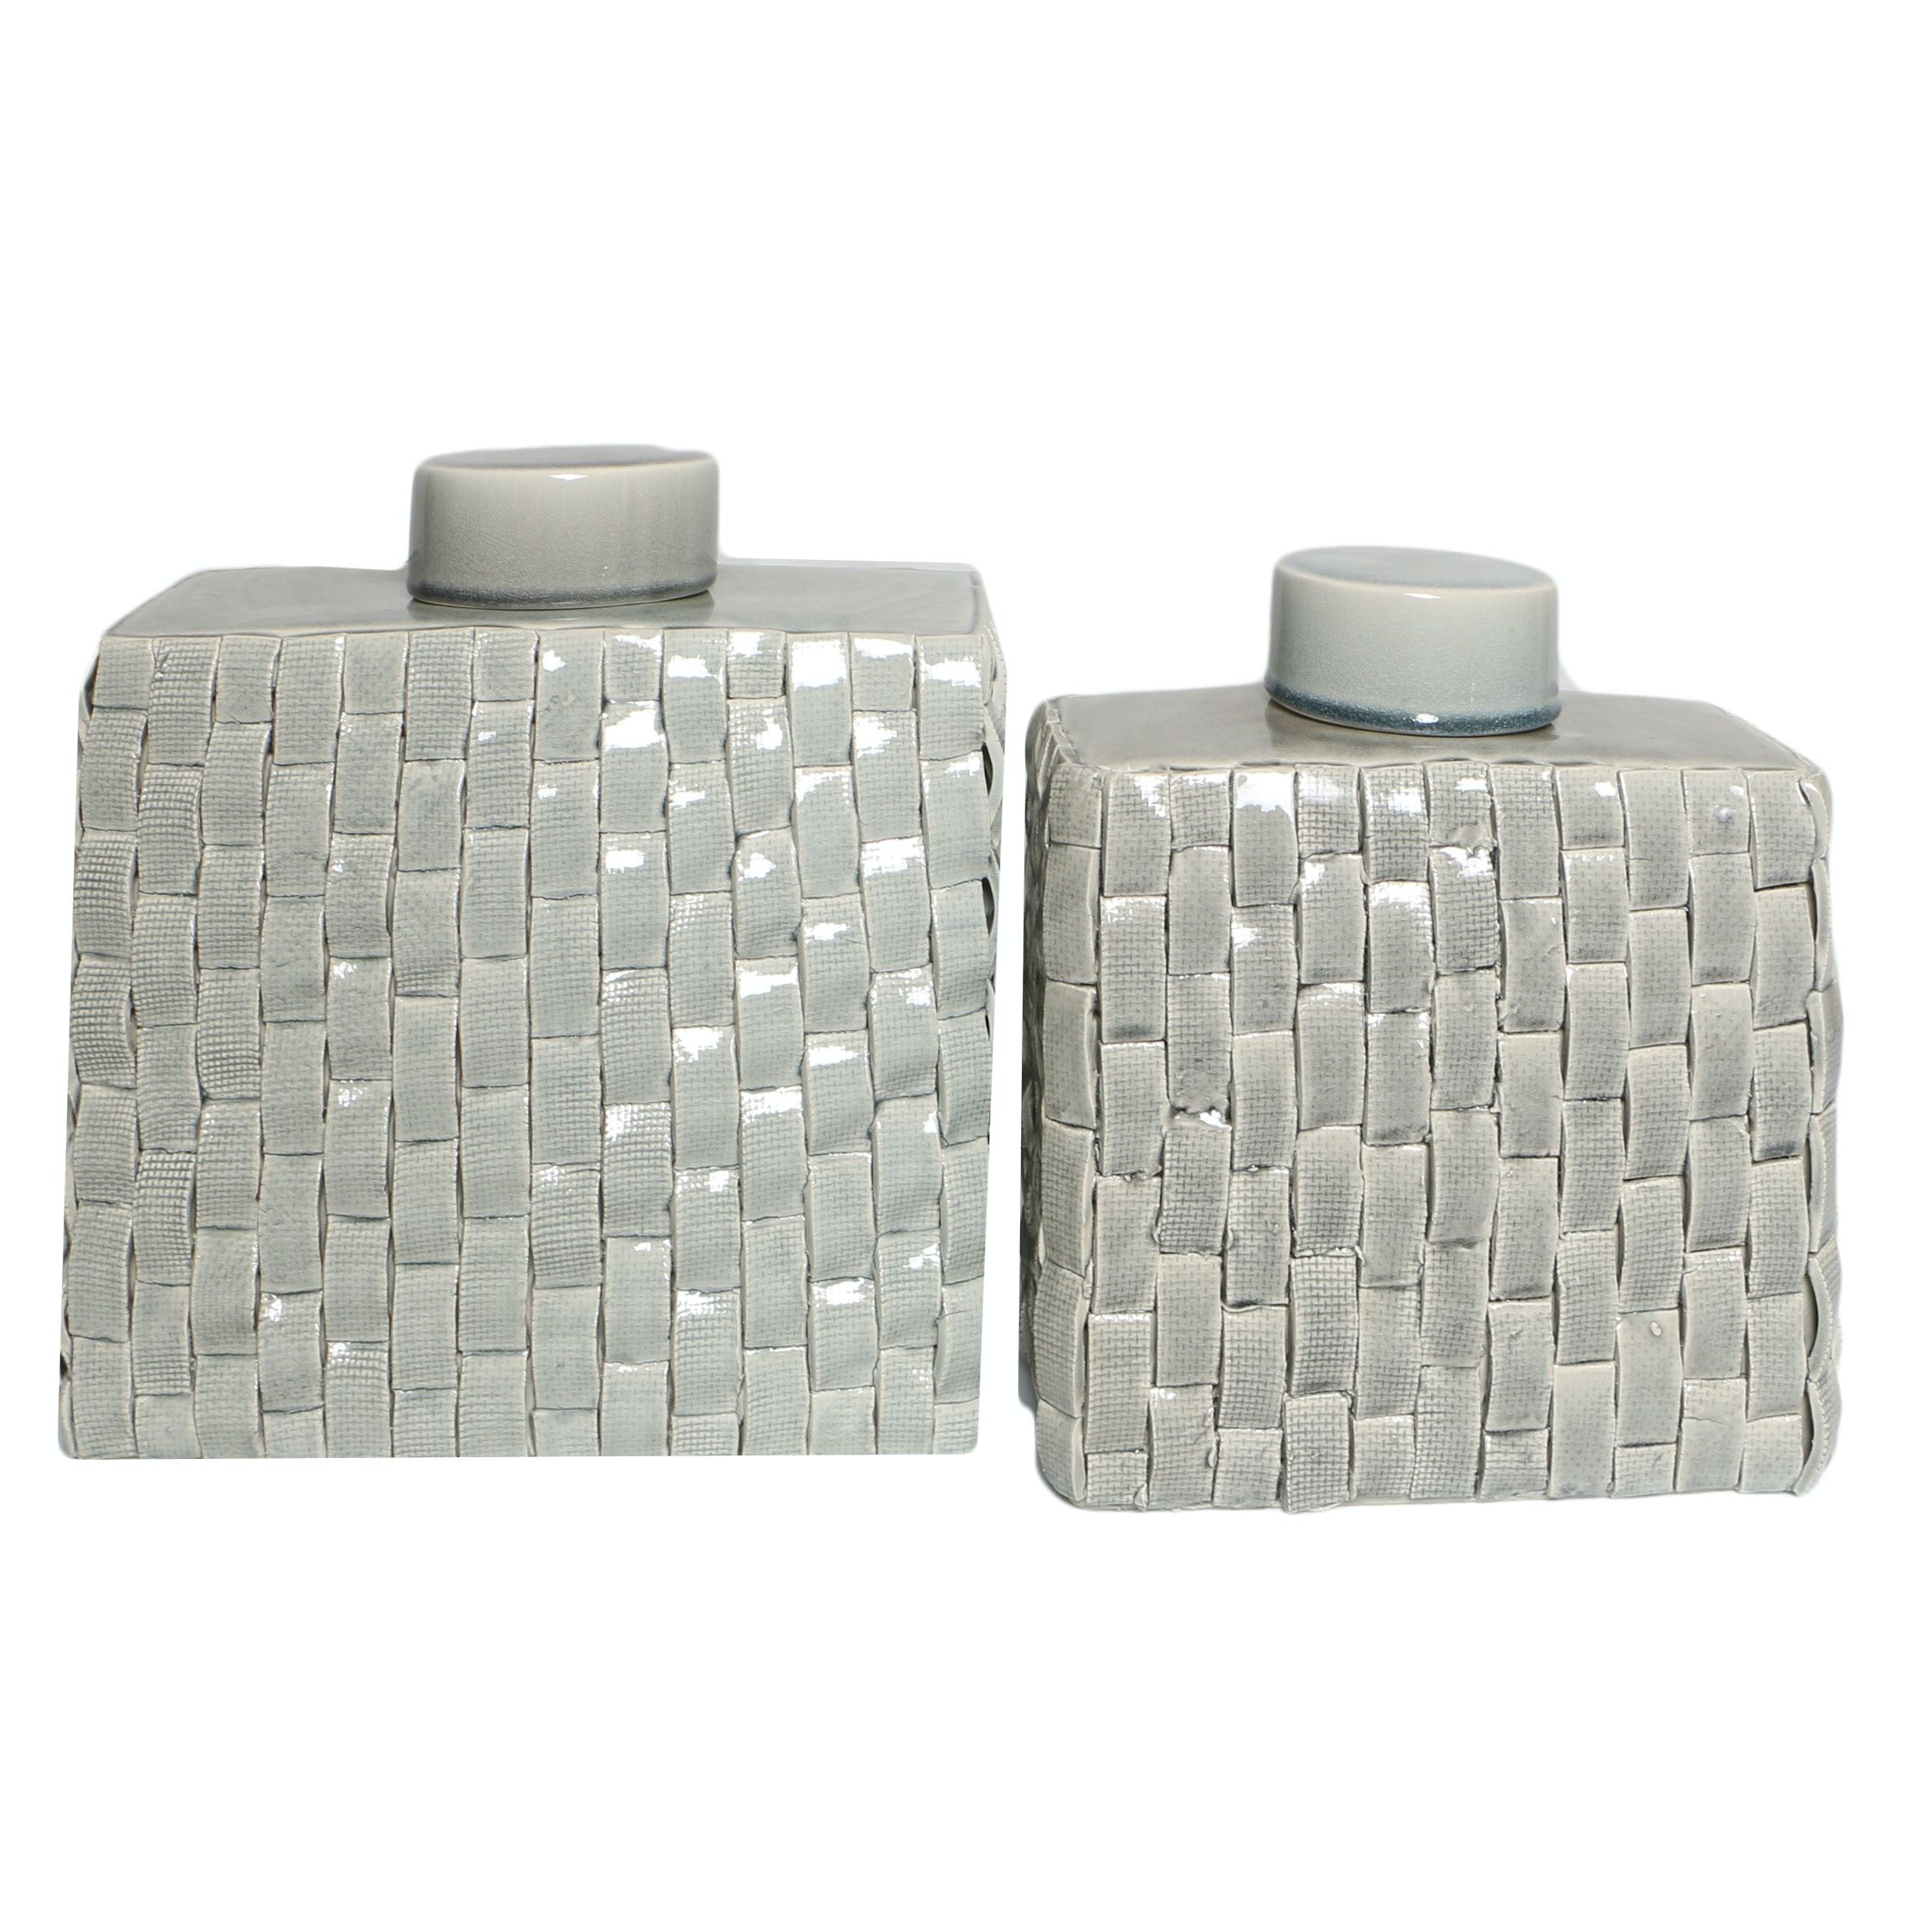 Ceramic Basketweave Jars with Lids